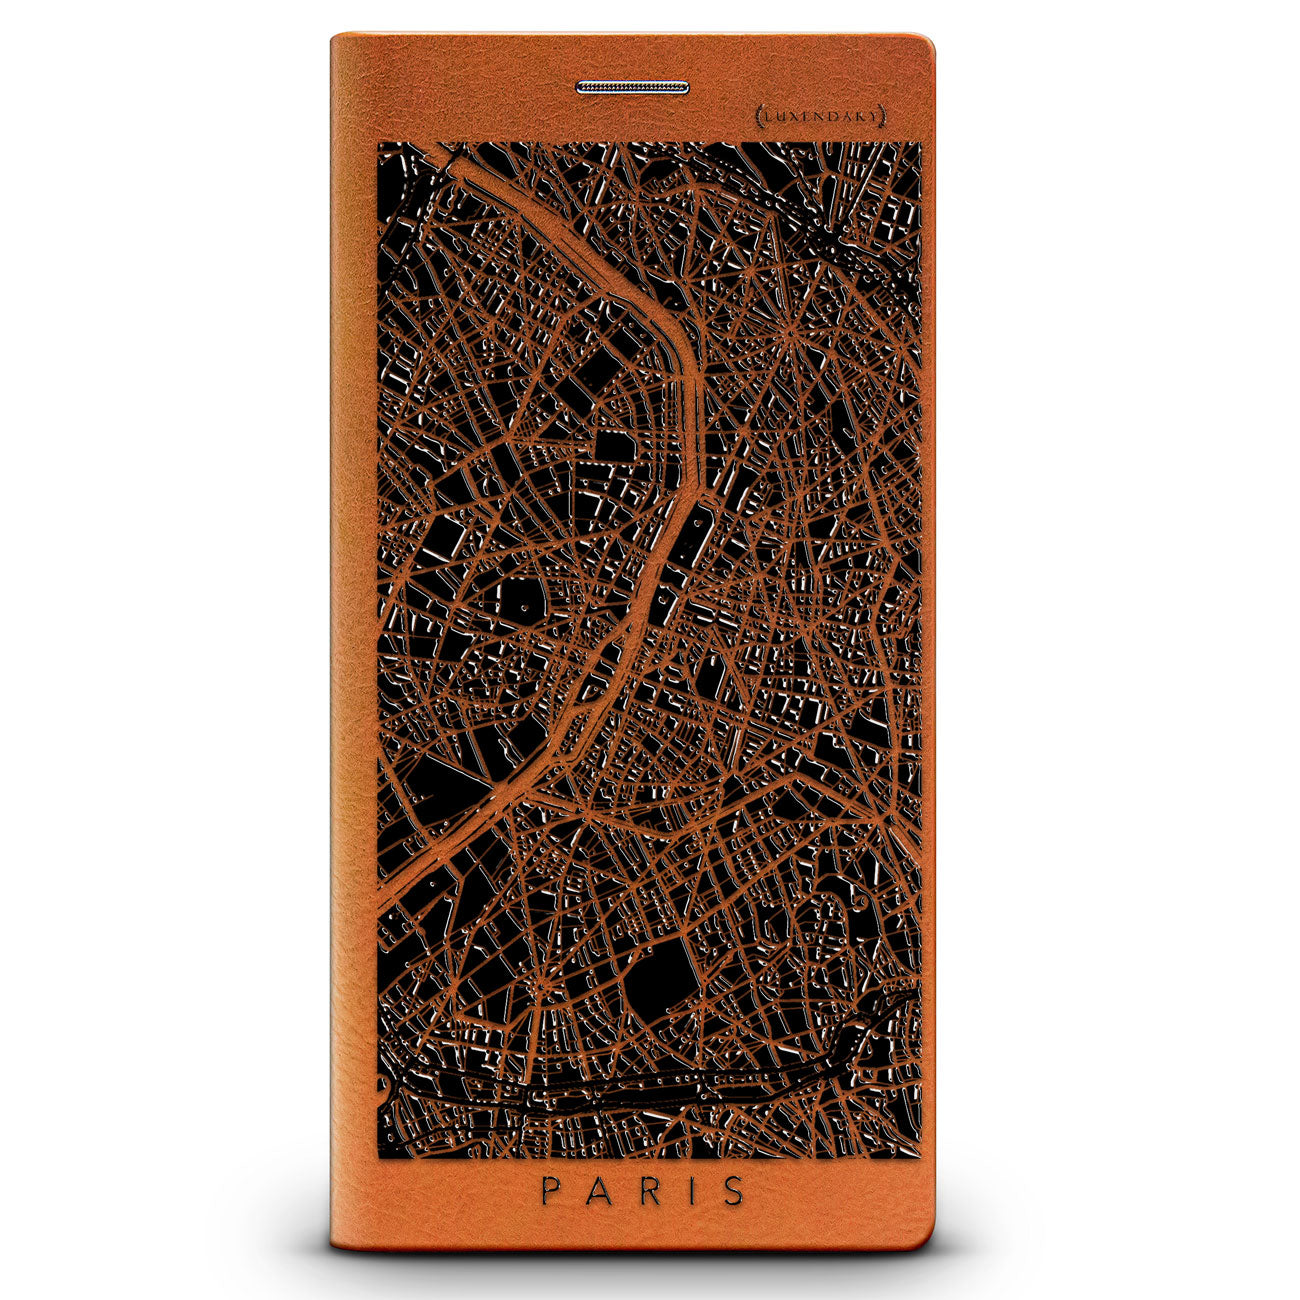 Paris Streets Map